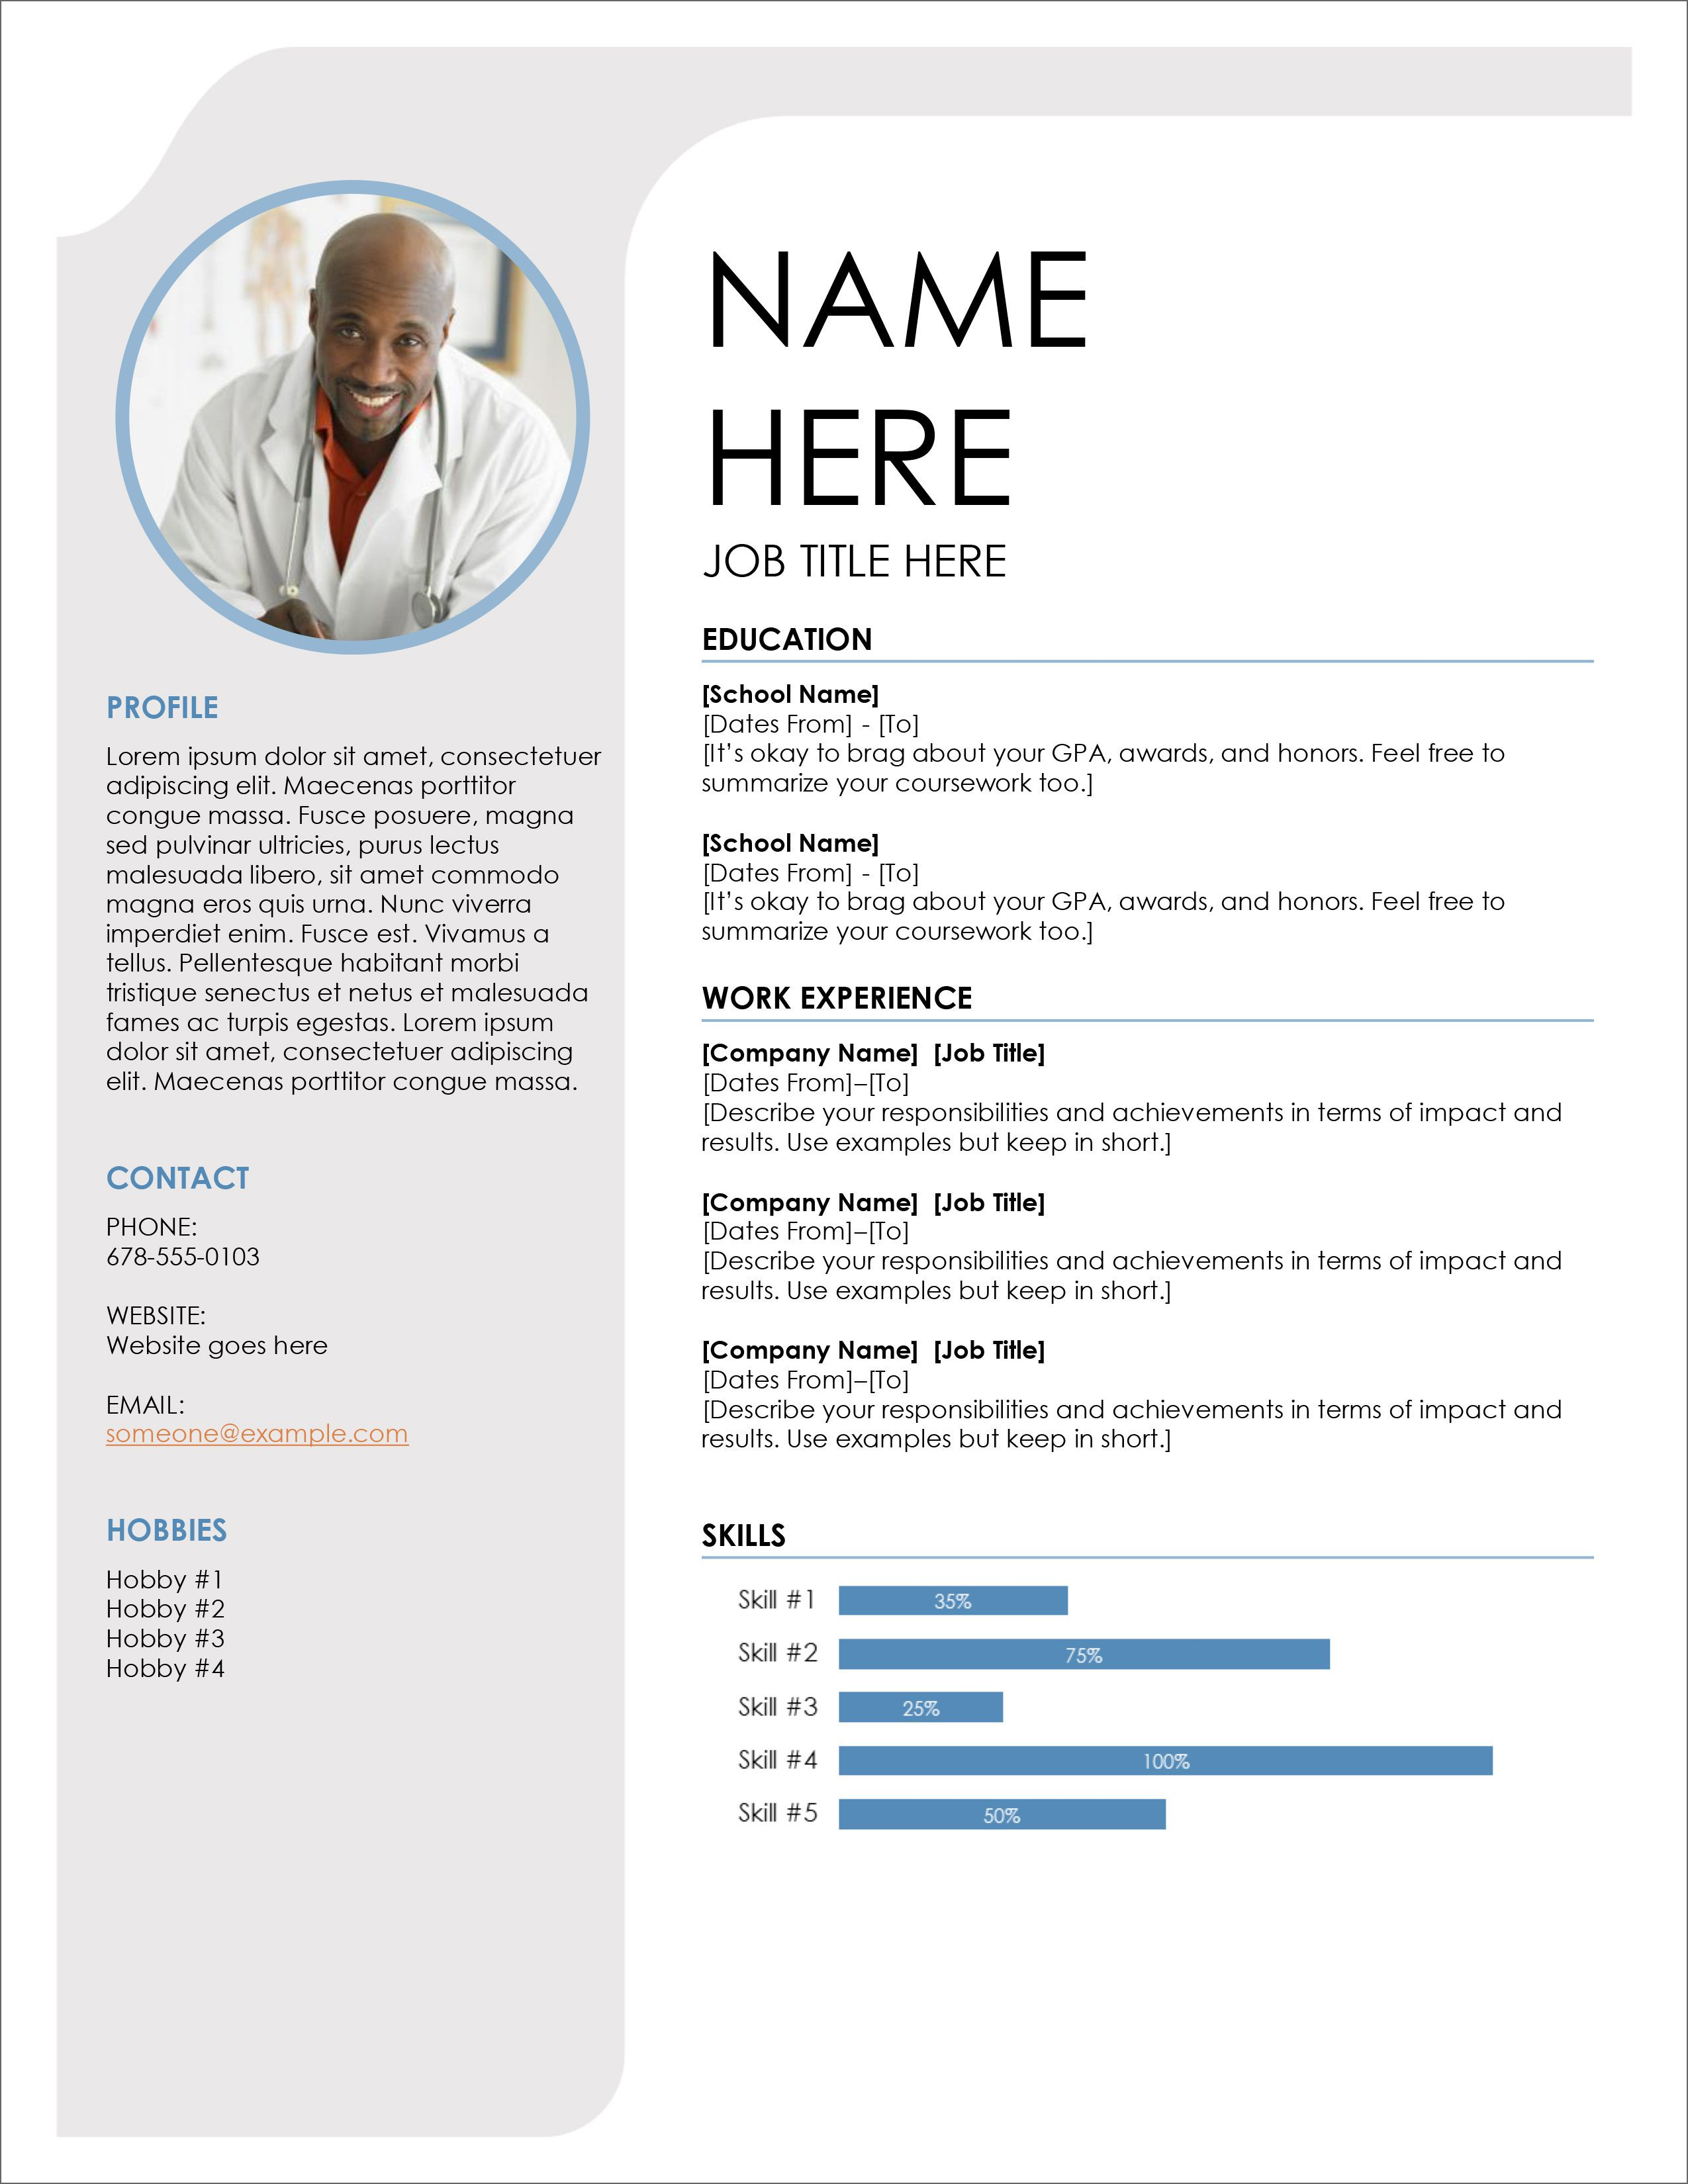 006 Stunning Download Template For Word Concept  Wordpres Free Resume 2007 Addres LabelFull